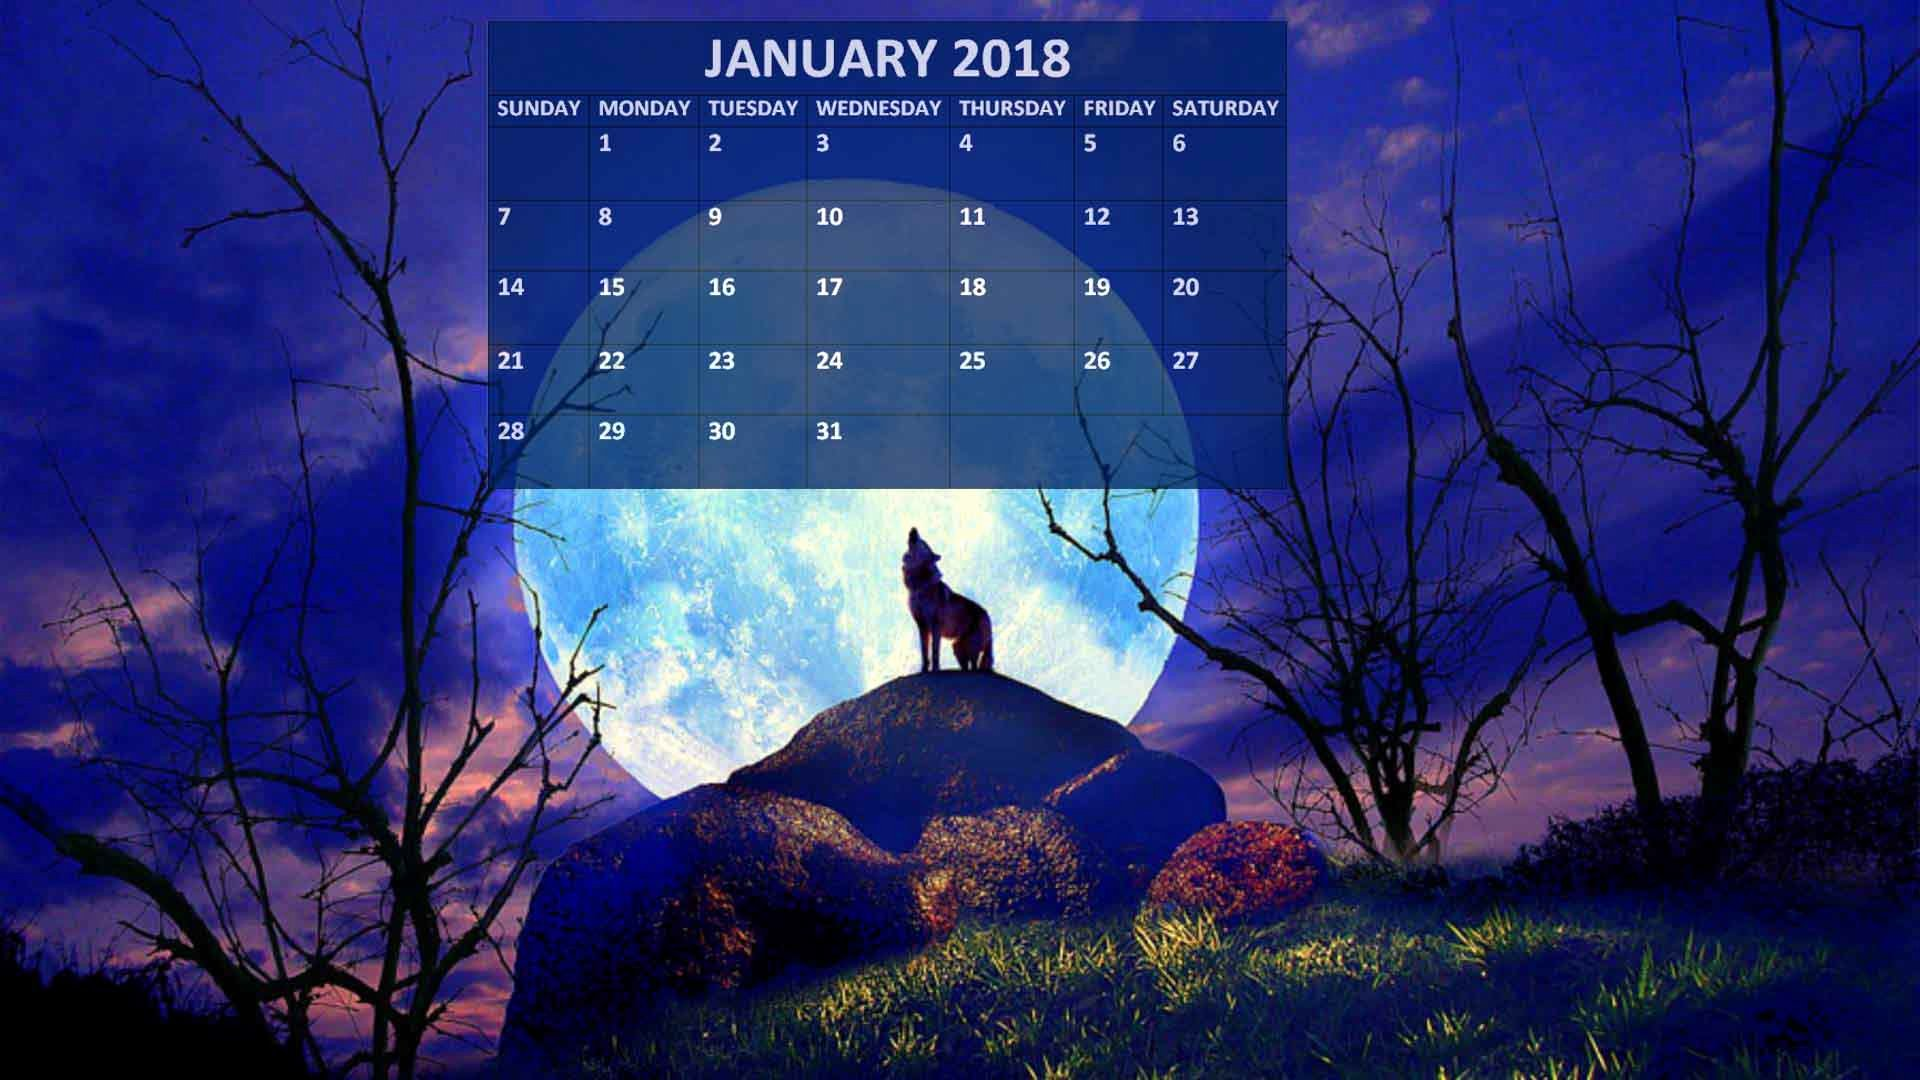 Suze orman Promissory Note Best Of 10 Amazing January 2018 Nature Printable Calendars Free